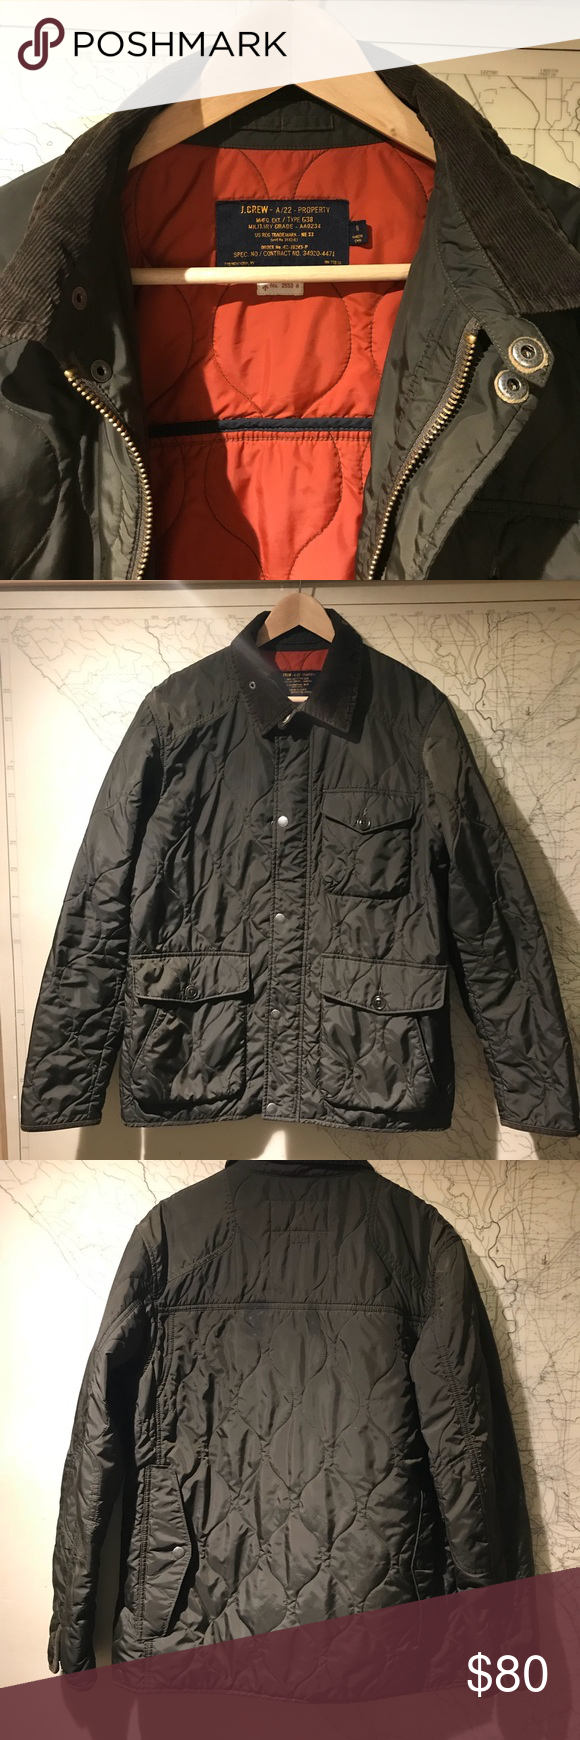 J. Crew quilted jacket (With images) Quilted jacket